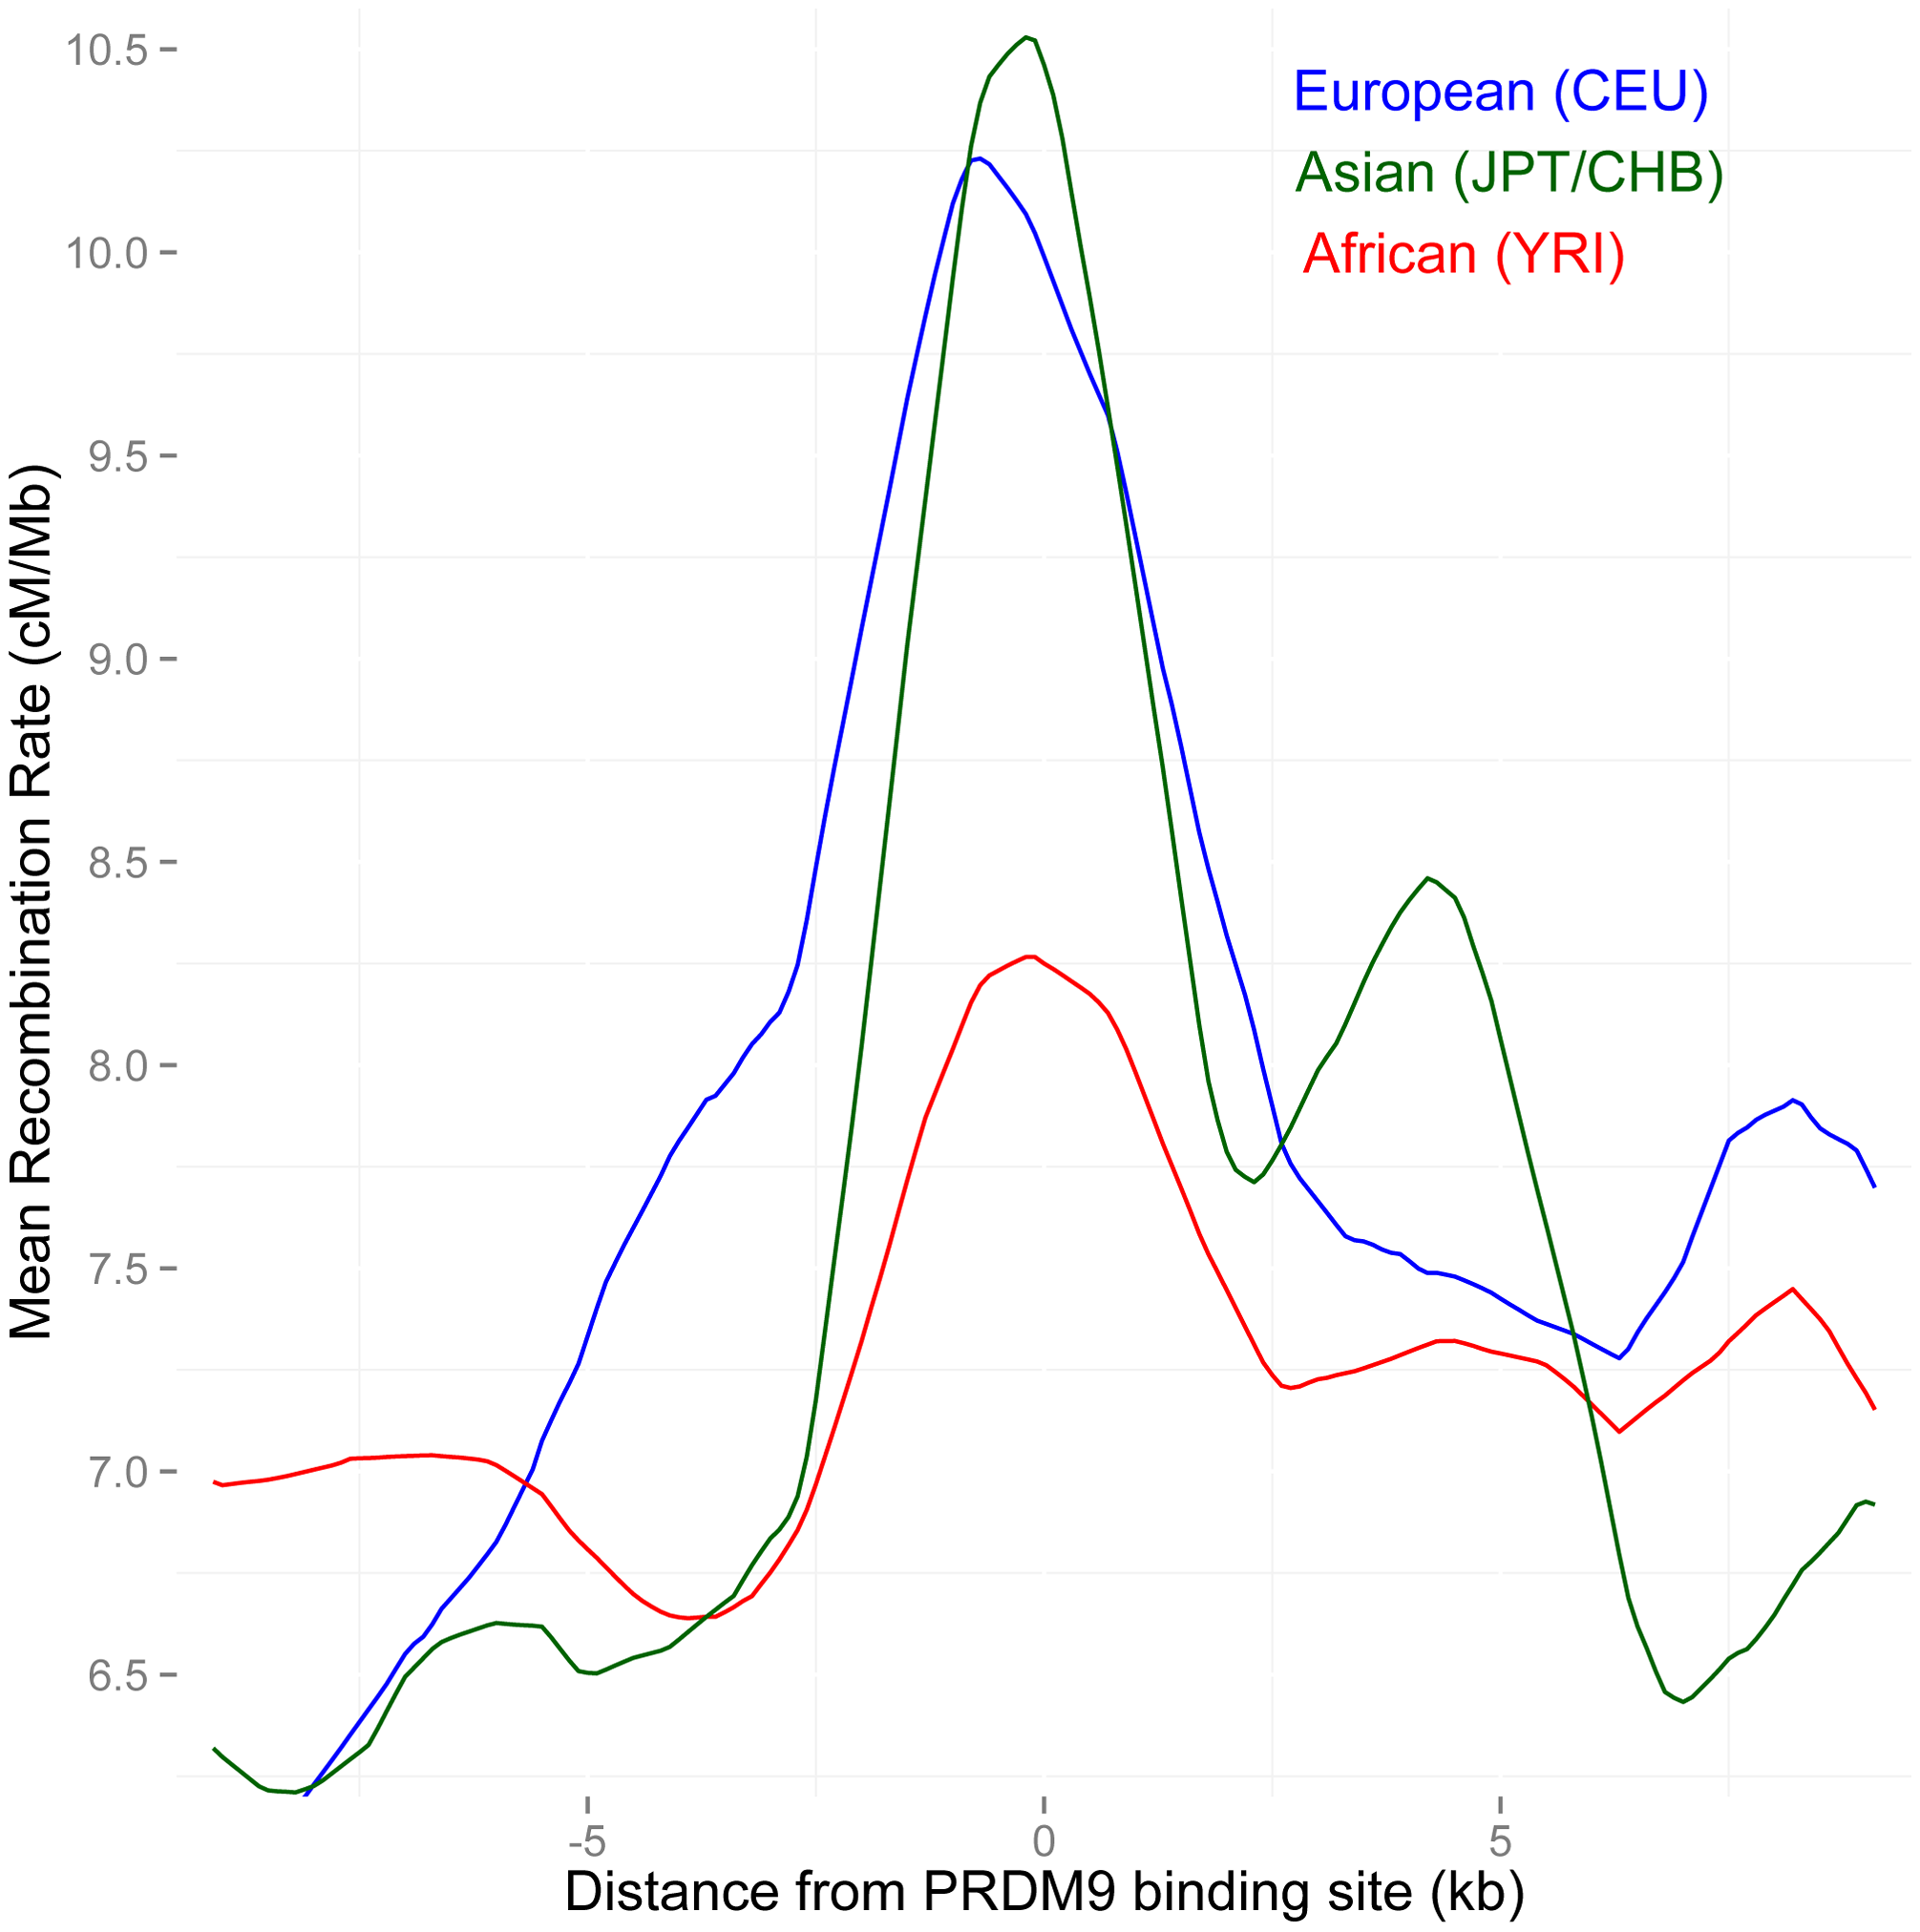 Separate LD-based recombination rates in PAR1 in three human continental groups, around the binding sites of the PRDM9 B allele.